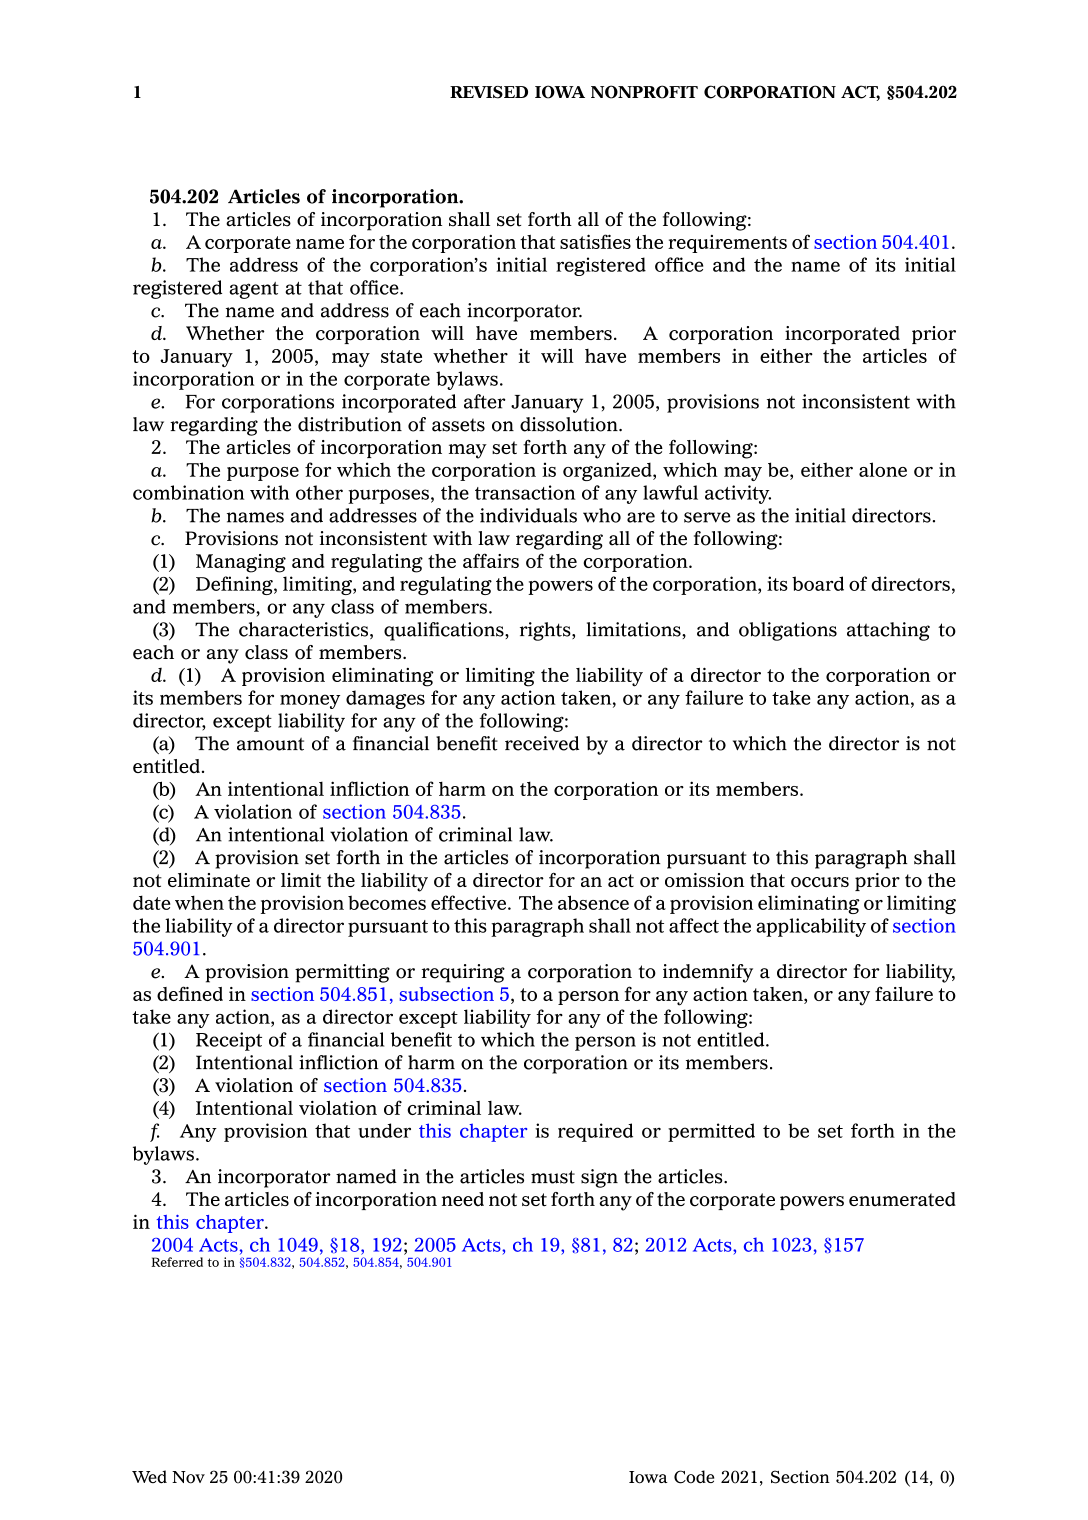 Revised Iowa Nonprofit Corporation Act, 504.202, Articles of Incorporation